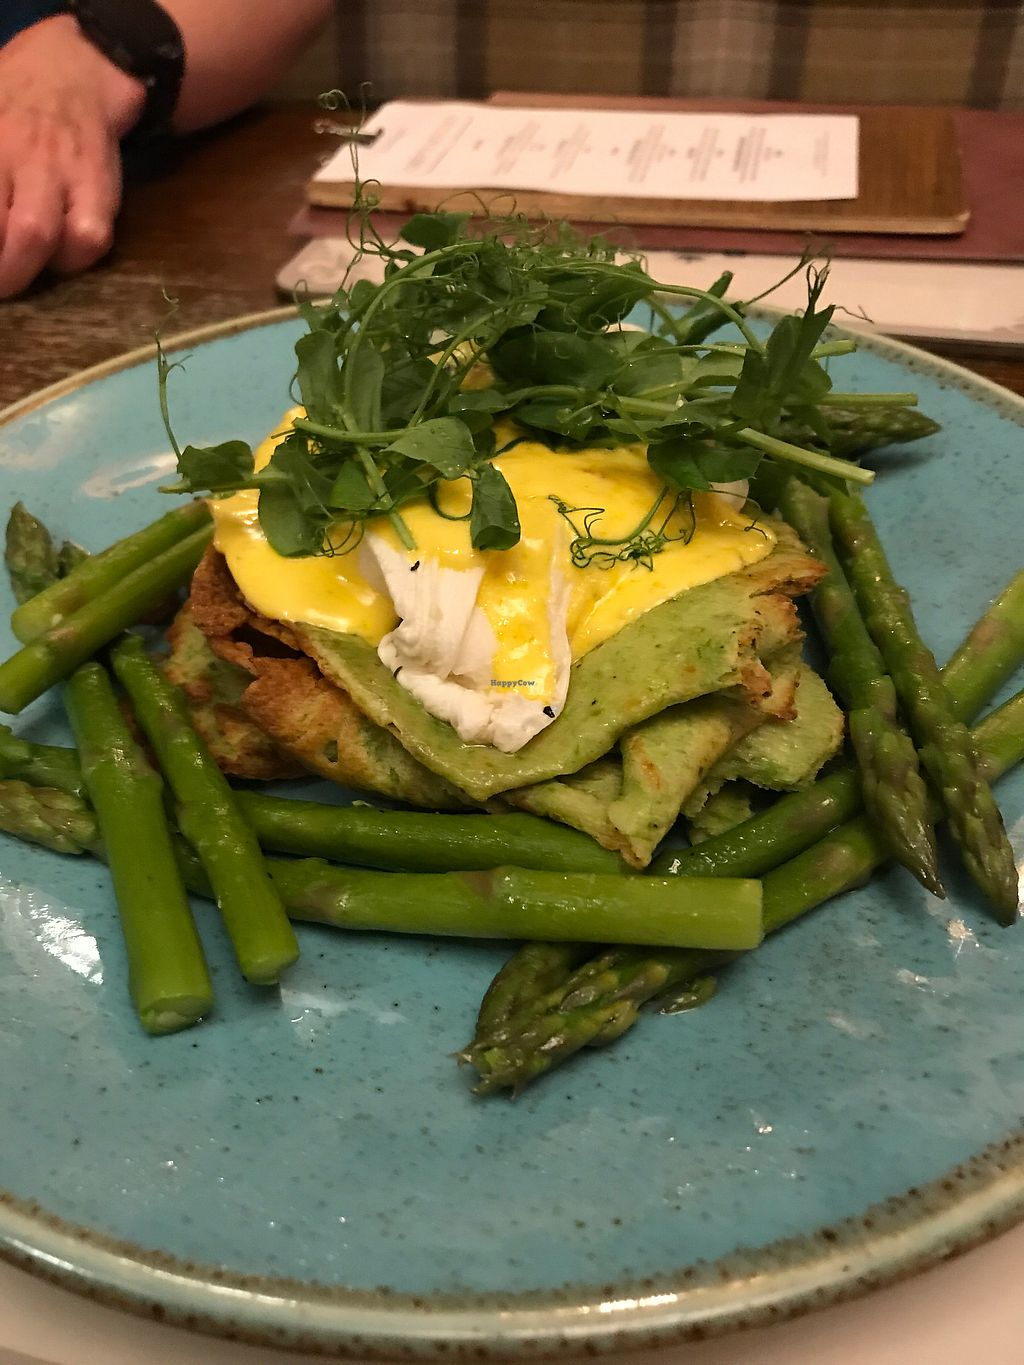 """Photo of The Boathouse  by <a href=""""/members/profile/ChrisSpray"""">ChrisSpray</a> <br/>Pea pancake (this one has an egg added). Home grown spinach, walnut and oat cream sauce <br/> October 29, 2017  - <a href='/contact/abuse/image/103330/319825'>Report</a>"""